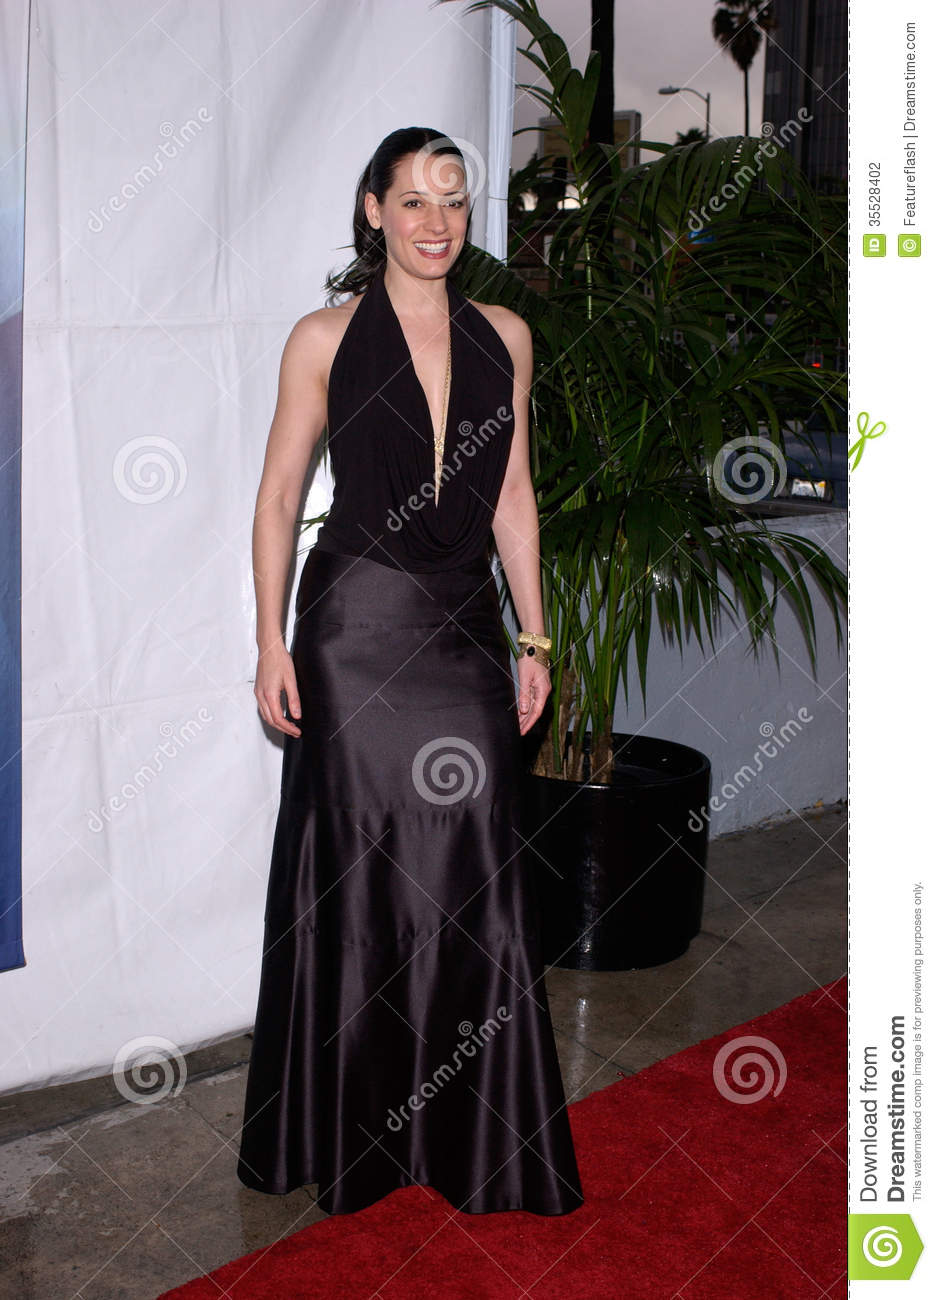 Feb 19 2005 Los Angeles Ca Actress Paget Brewster At The Writers Guild Awards In Hollywood